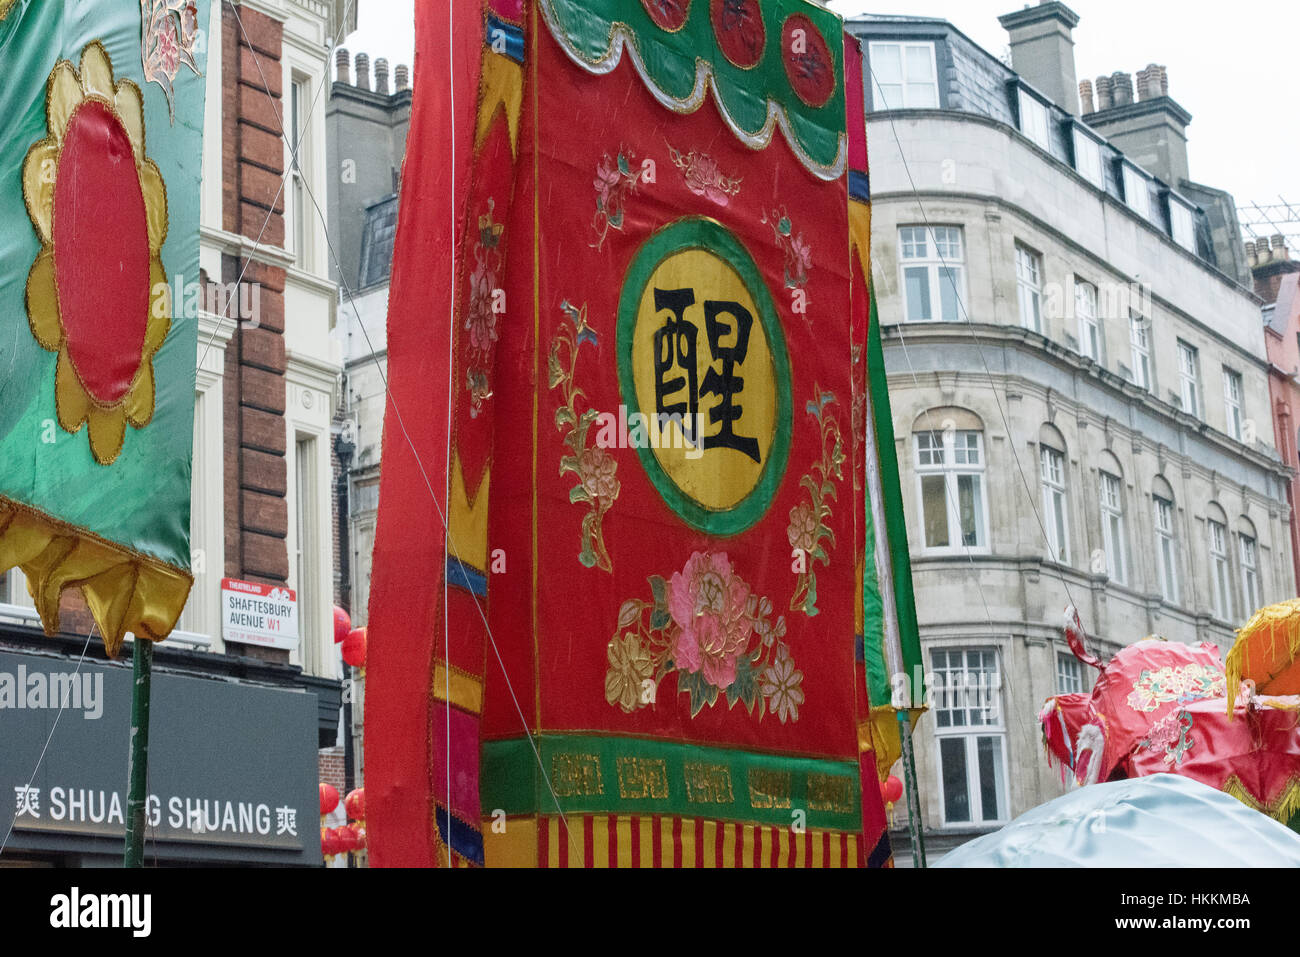 london 29th decorations in china town for the chinese new year celebration london 2017